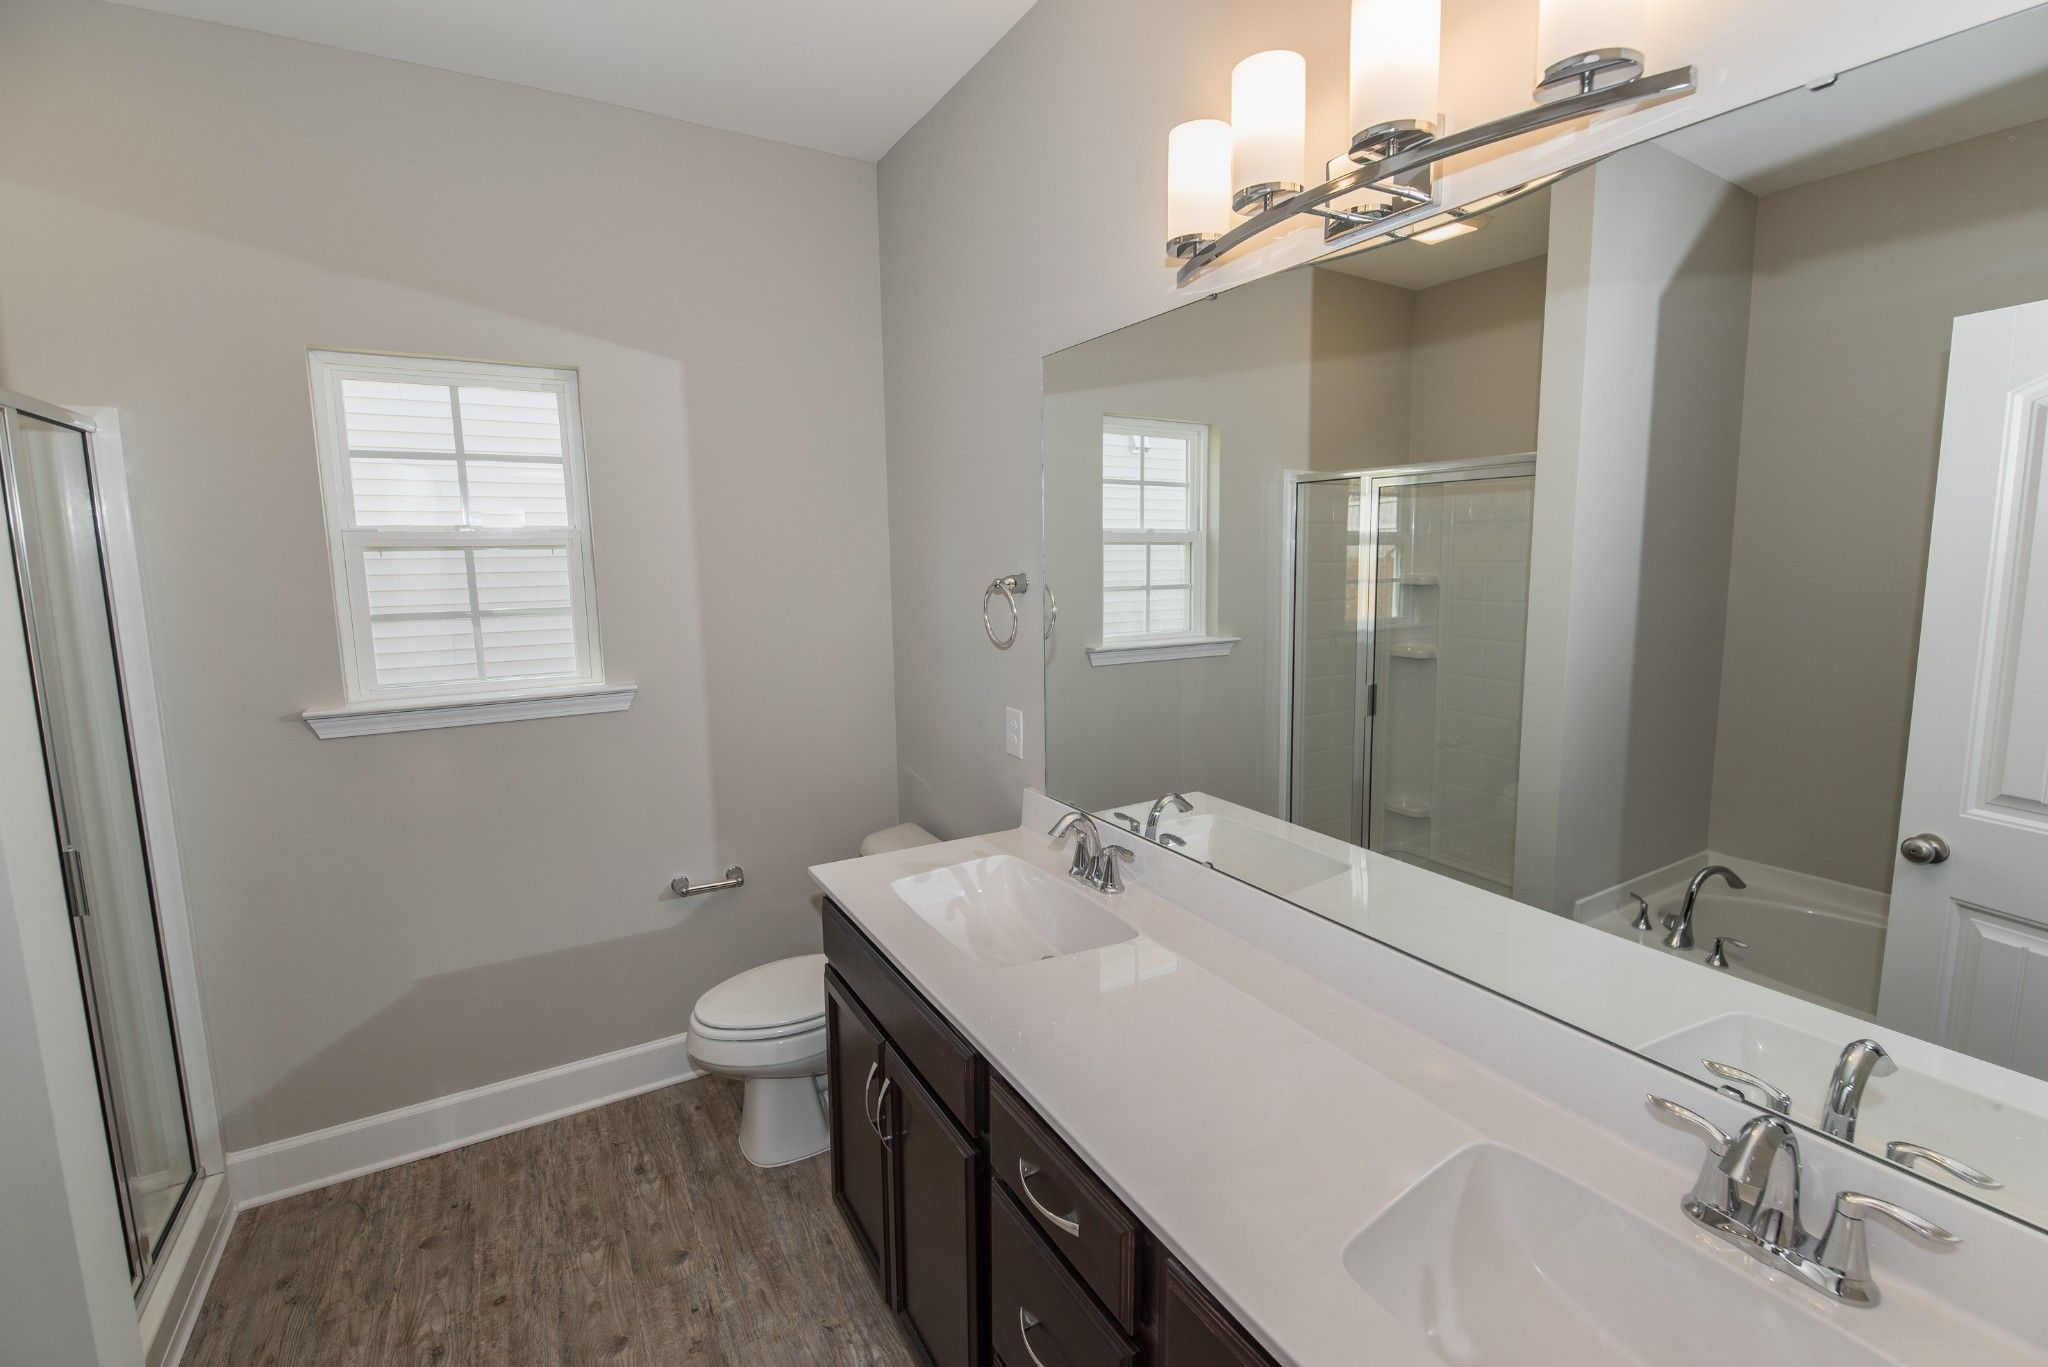 Bathroom featured in the Hatteras By Ernest Homes in Savannah, GA